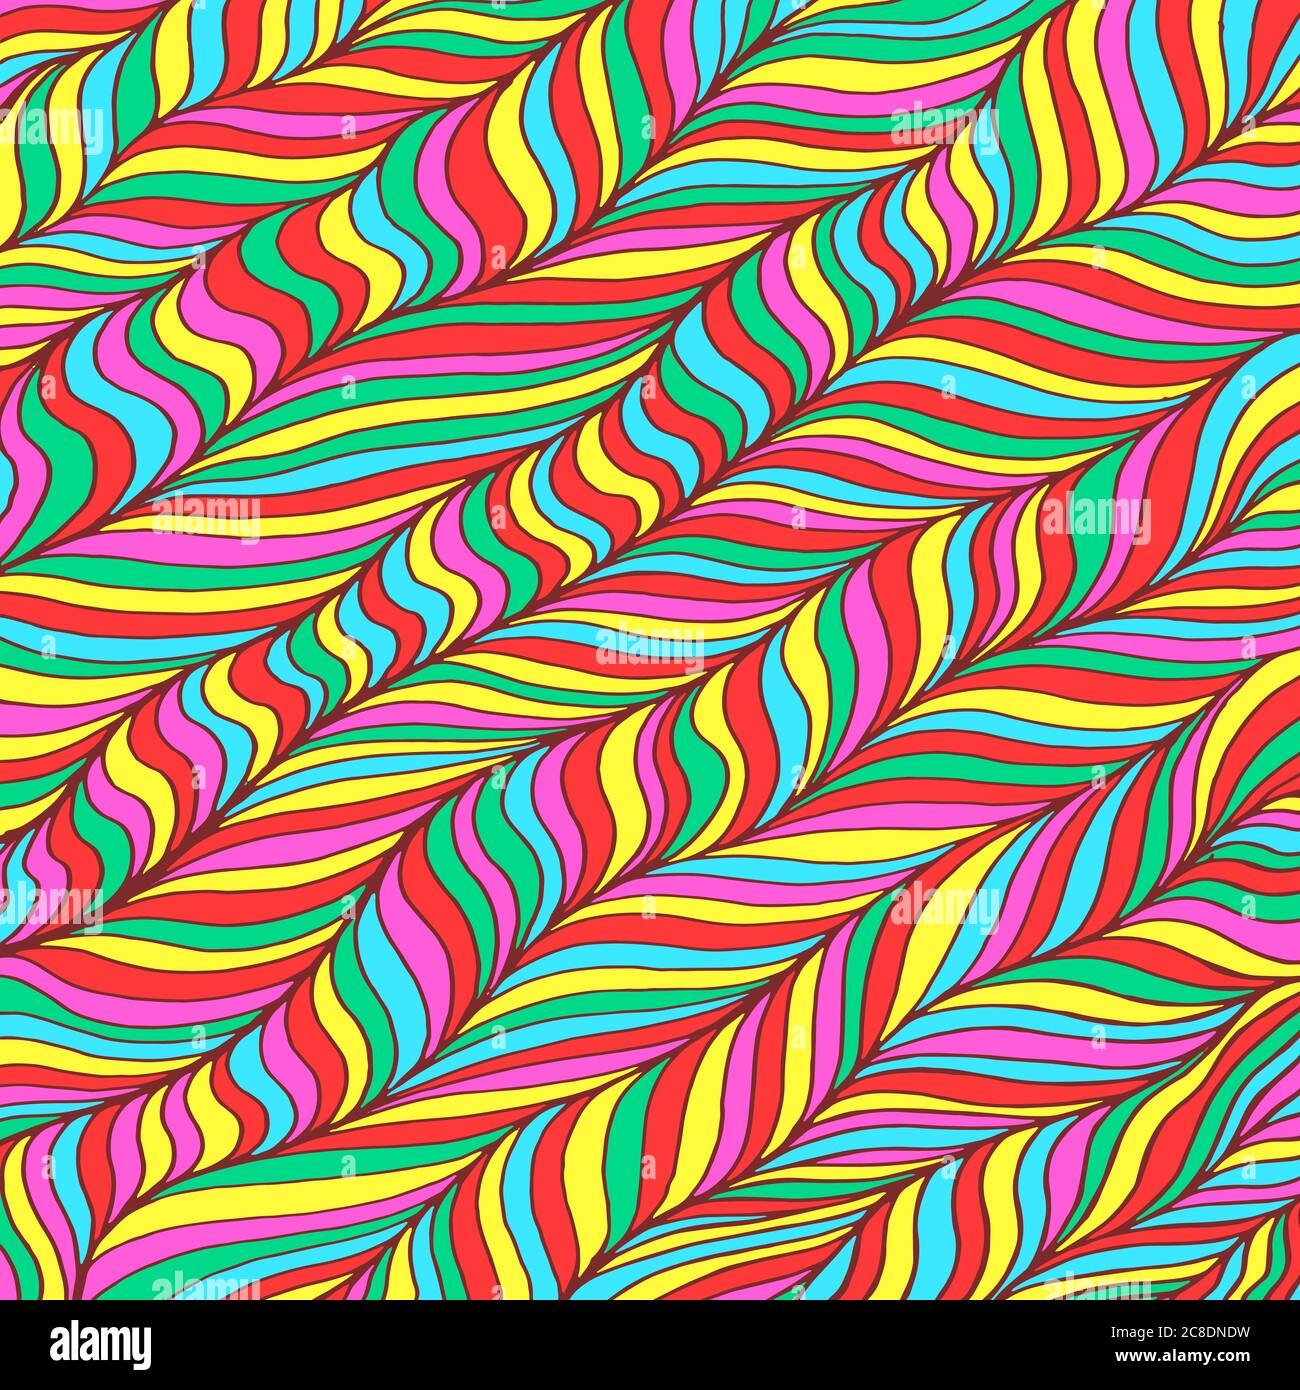 Doodle pattern background. Zentangle art. Rainbow colors. Trippy lollipop pattern. Neon color floral organic ornament. Psychedelic texture. Vector ill Stock Vector